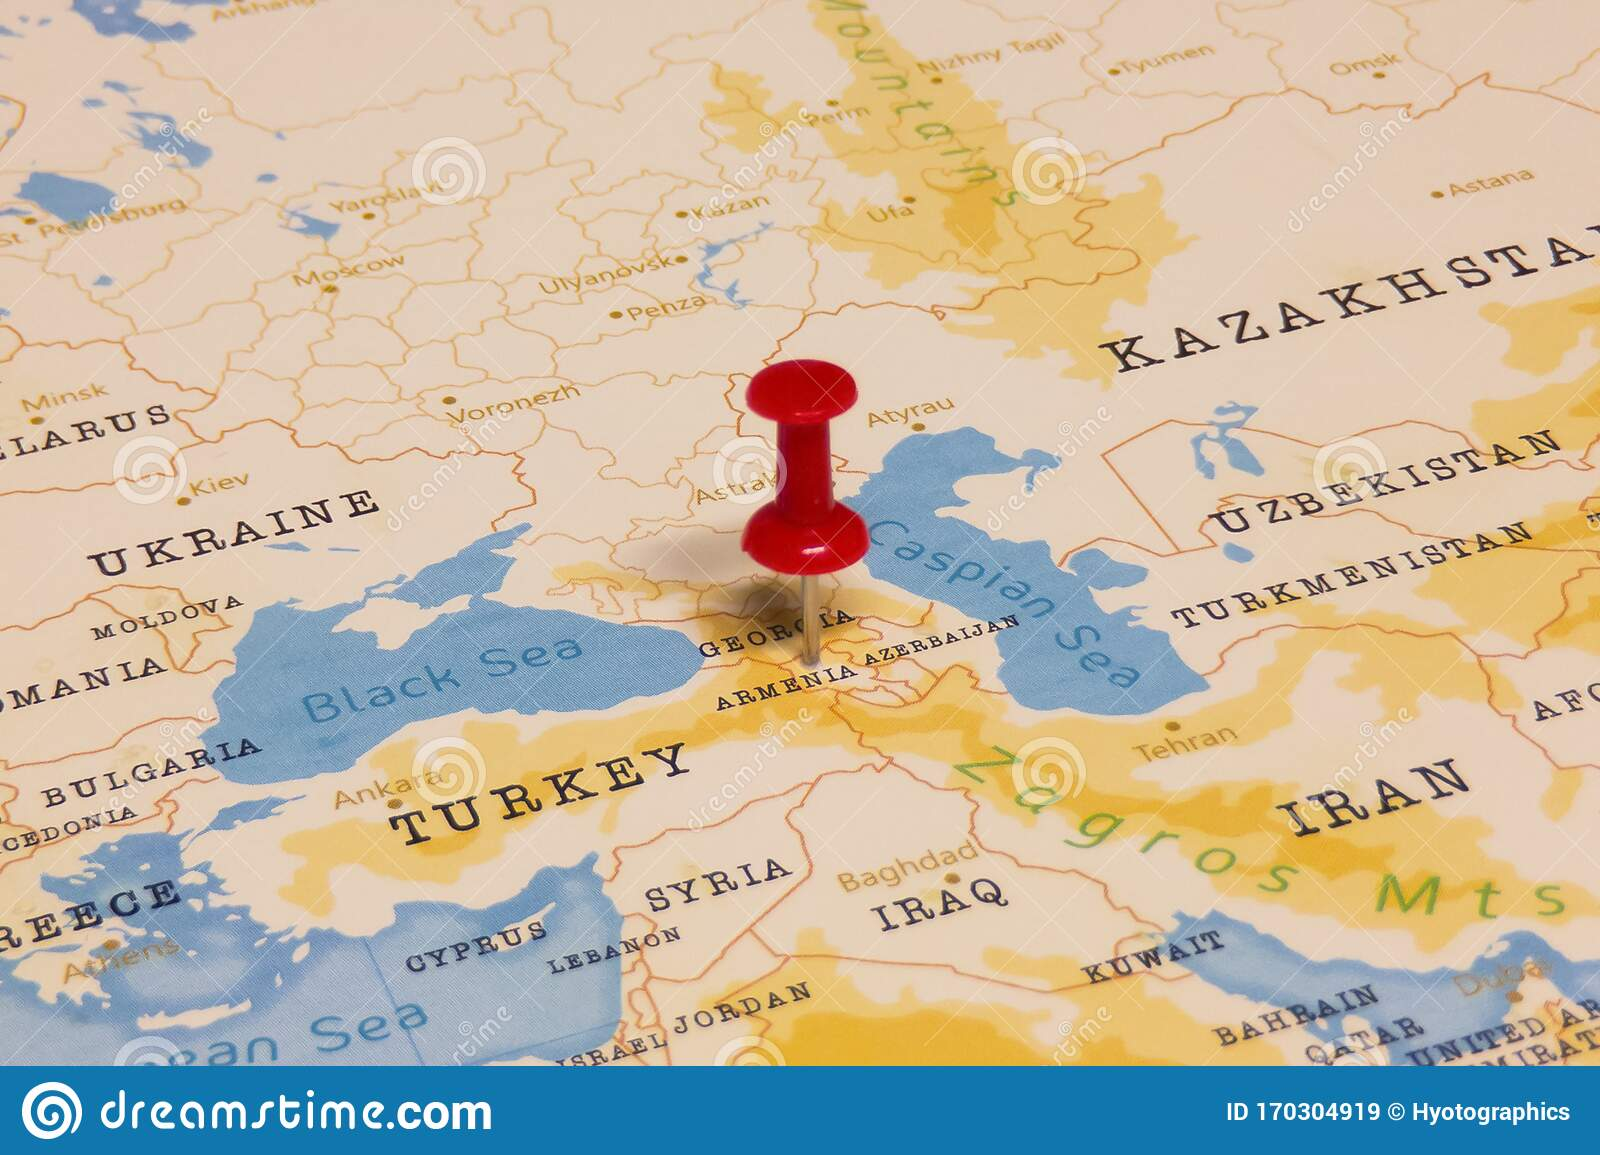 Picture of: A Red Pin On Armenia Of The World Map Stock Image Image Of Border Government 170304919